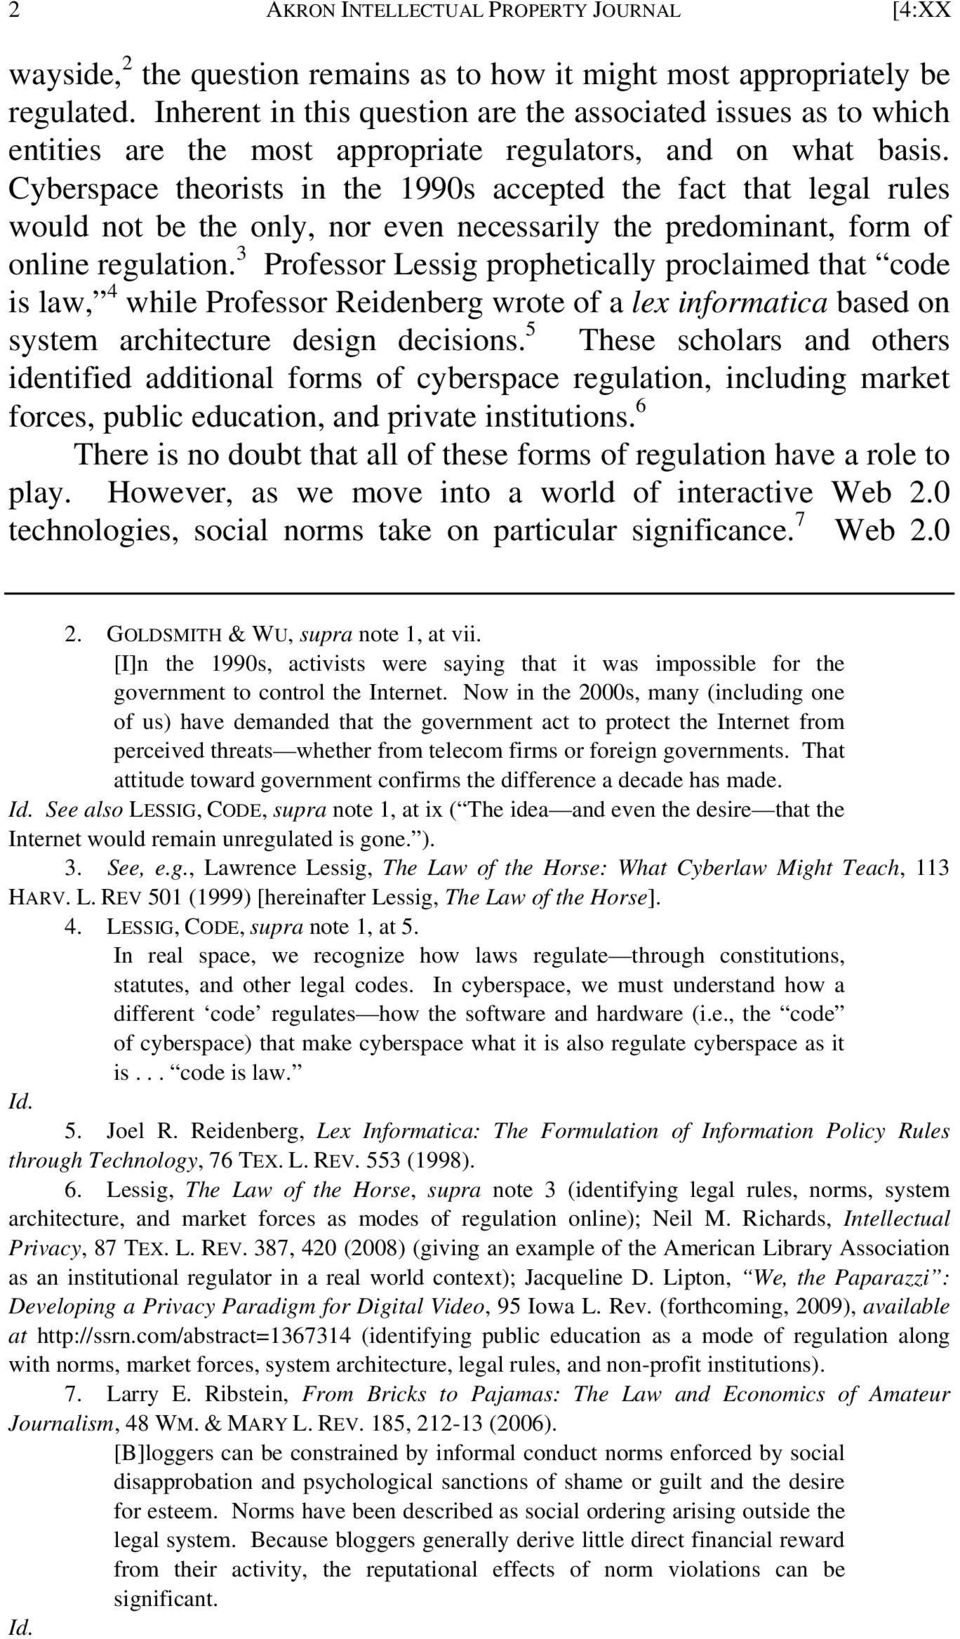 Cyberspace theorists in the 1990s accepted the fact that legal rules would not be the only, nor even necessarily the predominant, form of online regulation.